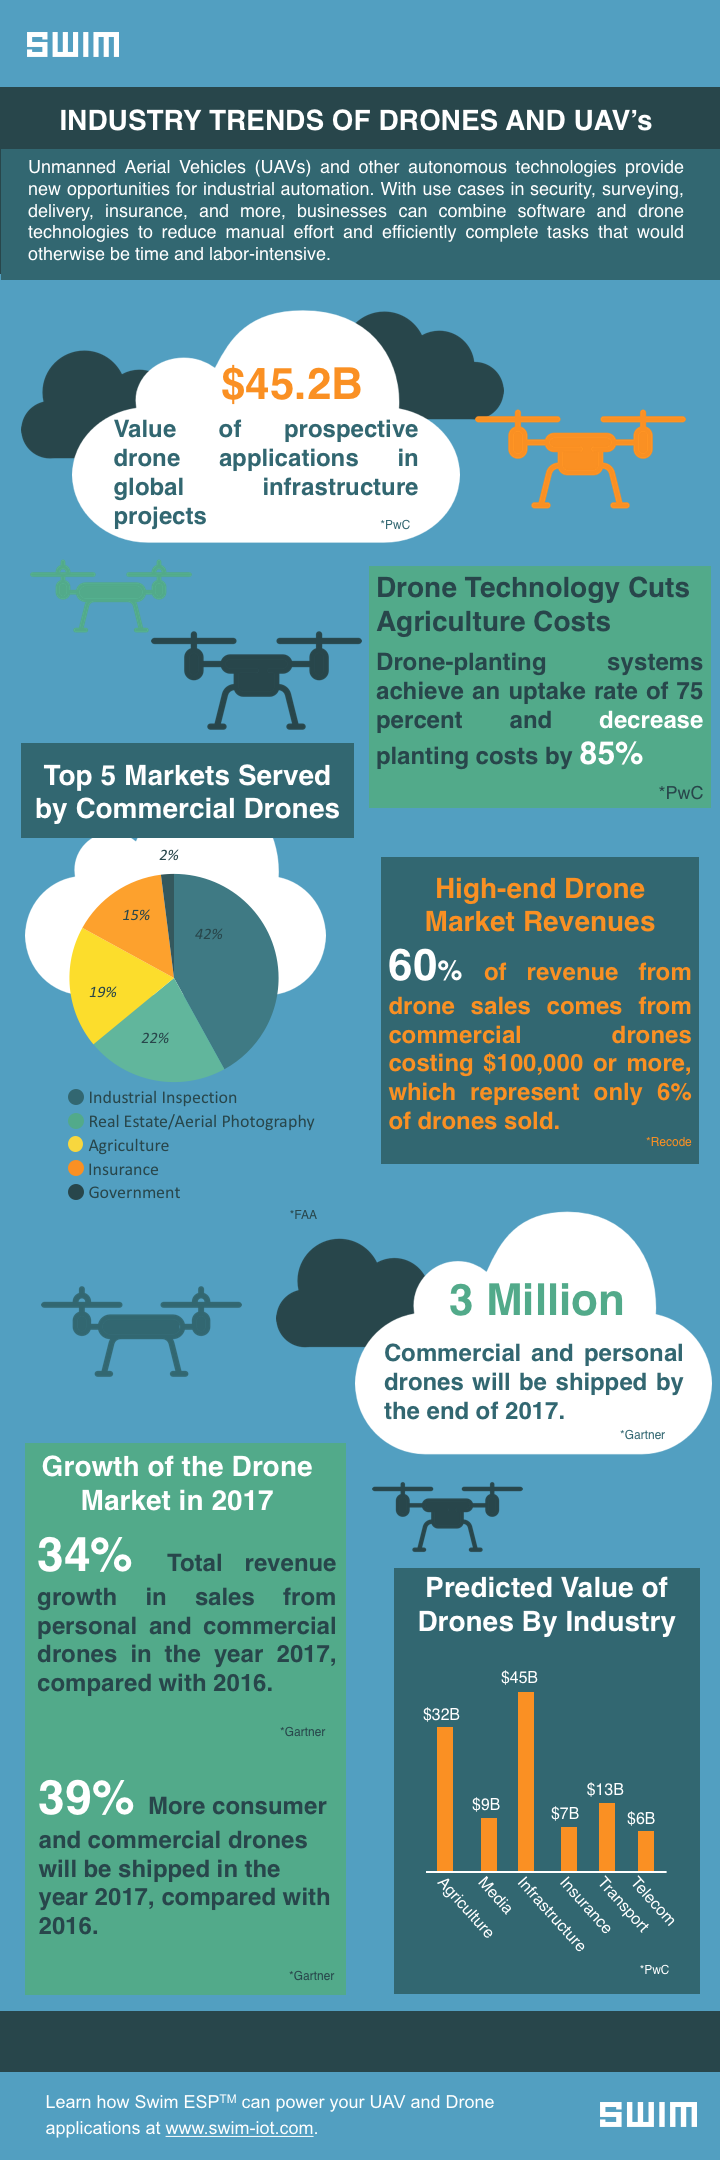 Swim_UAVs and Drones_Infographic